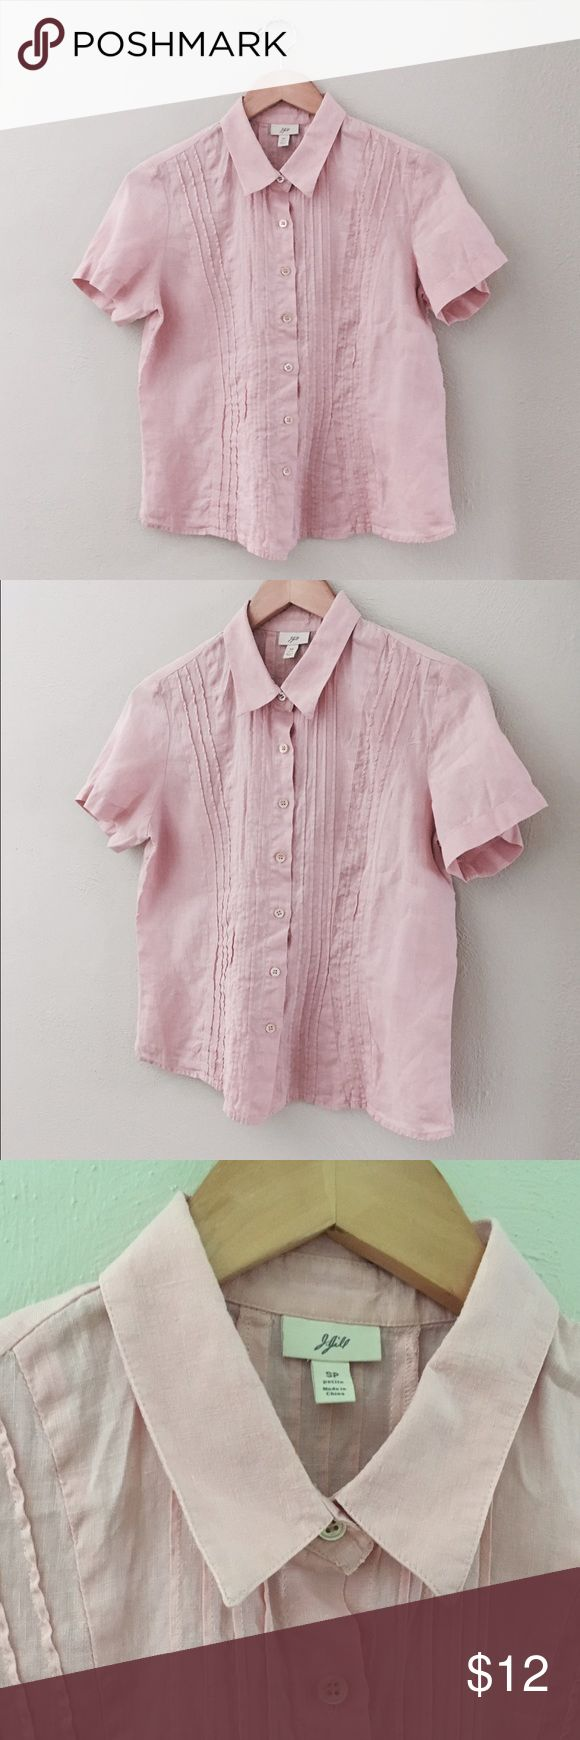 "J. Jill Linen Top - S or M Blush pink color, marked size Petite Small, but may also fit a Medium. Length 23"", chest 19.5"" laid flat, shoulders 15.5"". Natural looking slub linen fabric. J. Jill Tops Button Down Shirts"